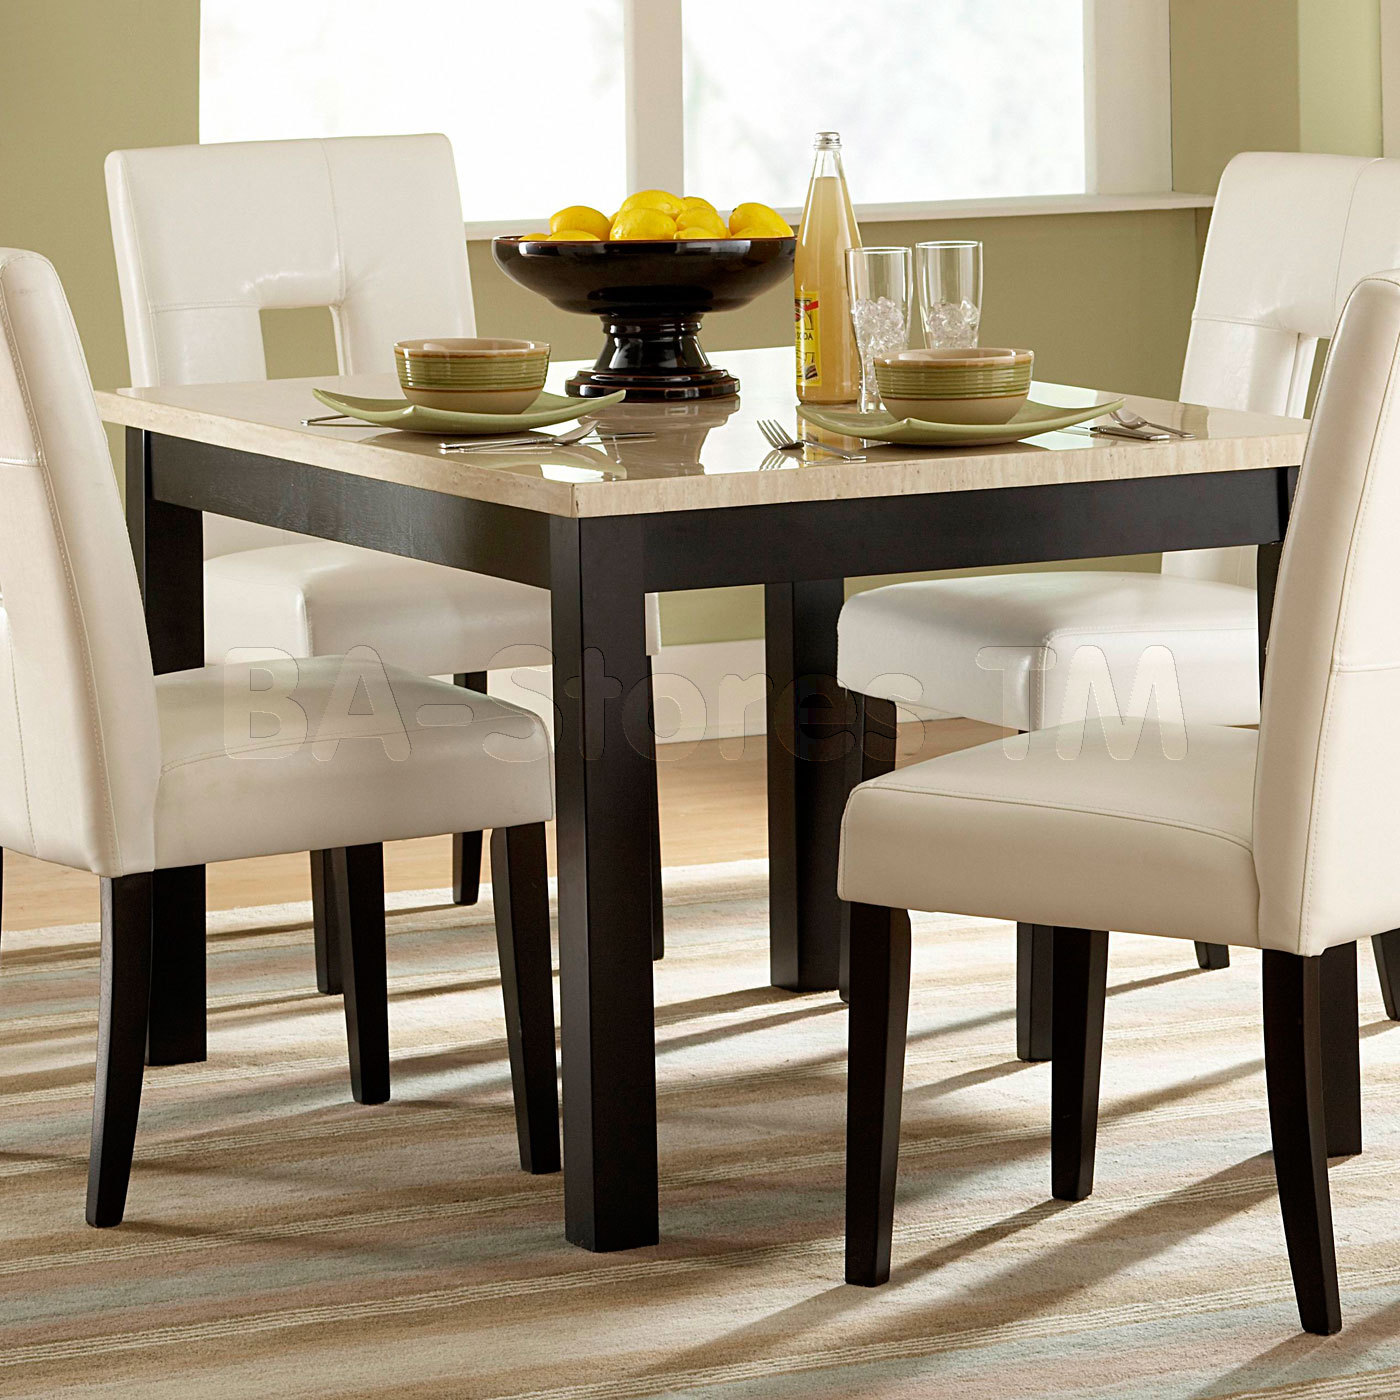 square dining table for 4 homesfeed. Black Bedroom Furniture Sets. Home Design Ideas